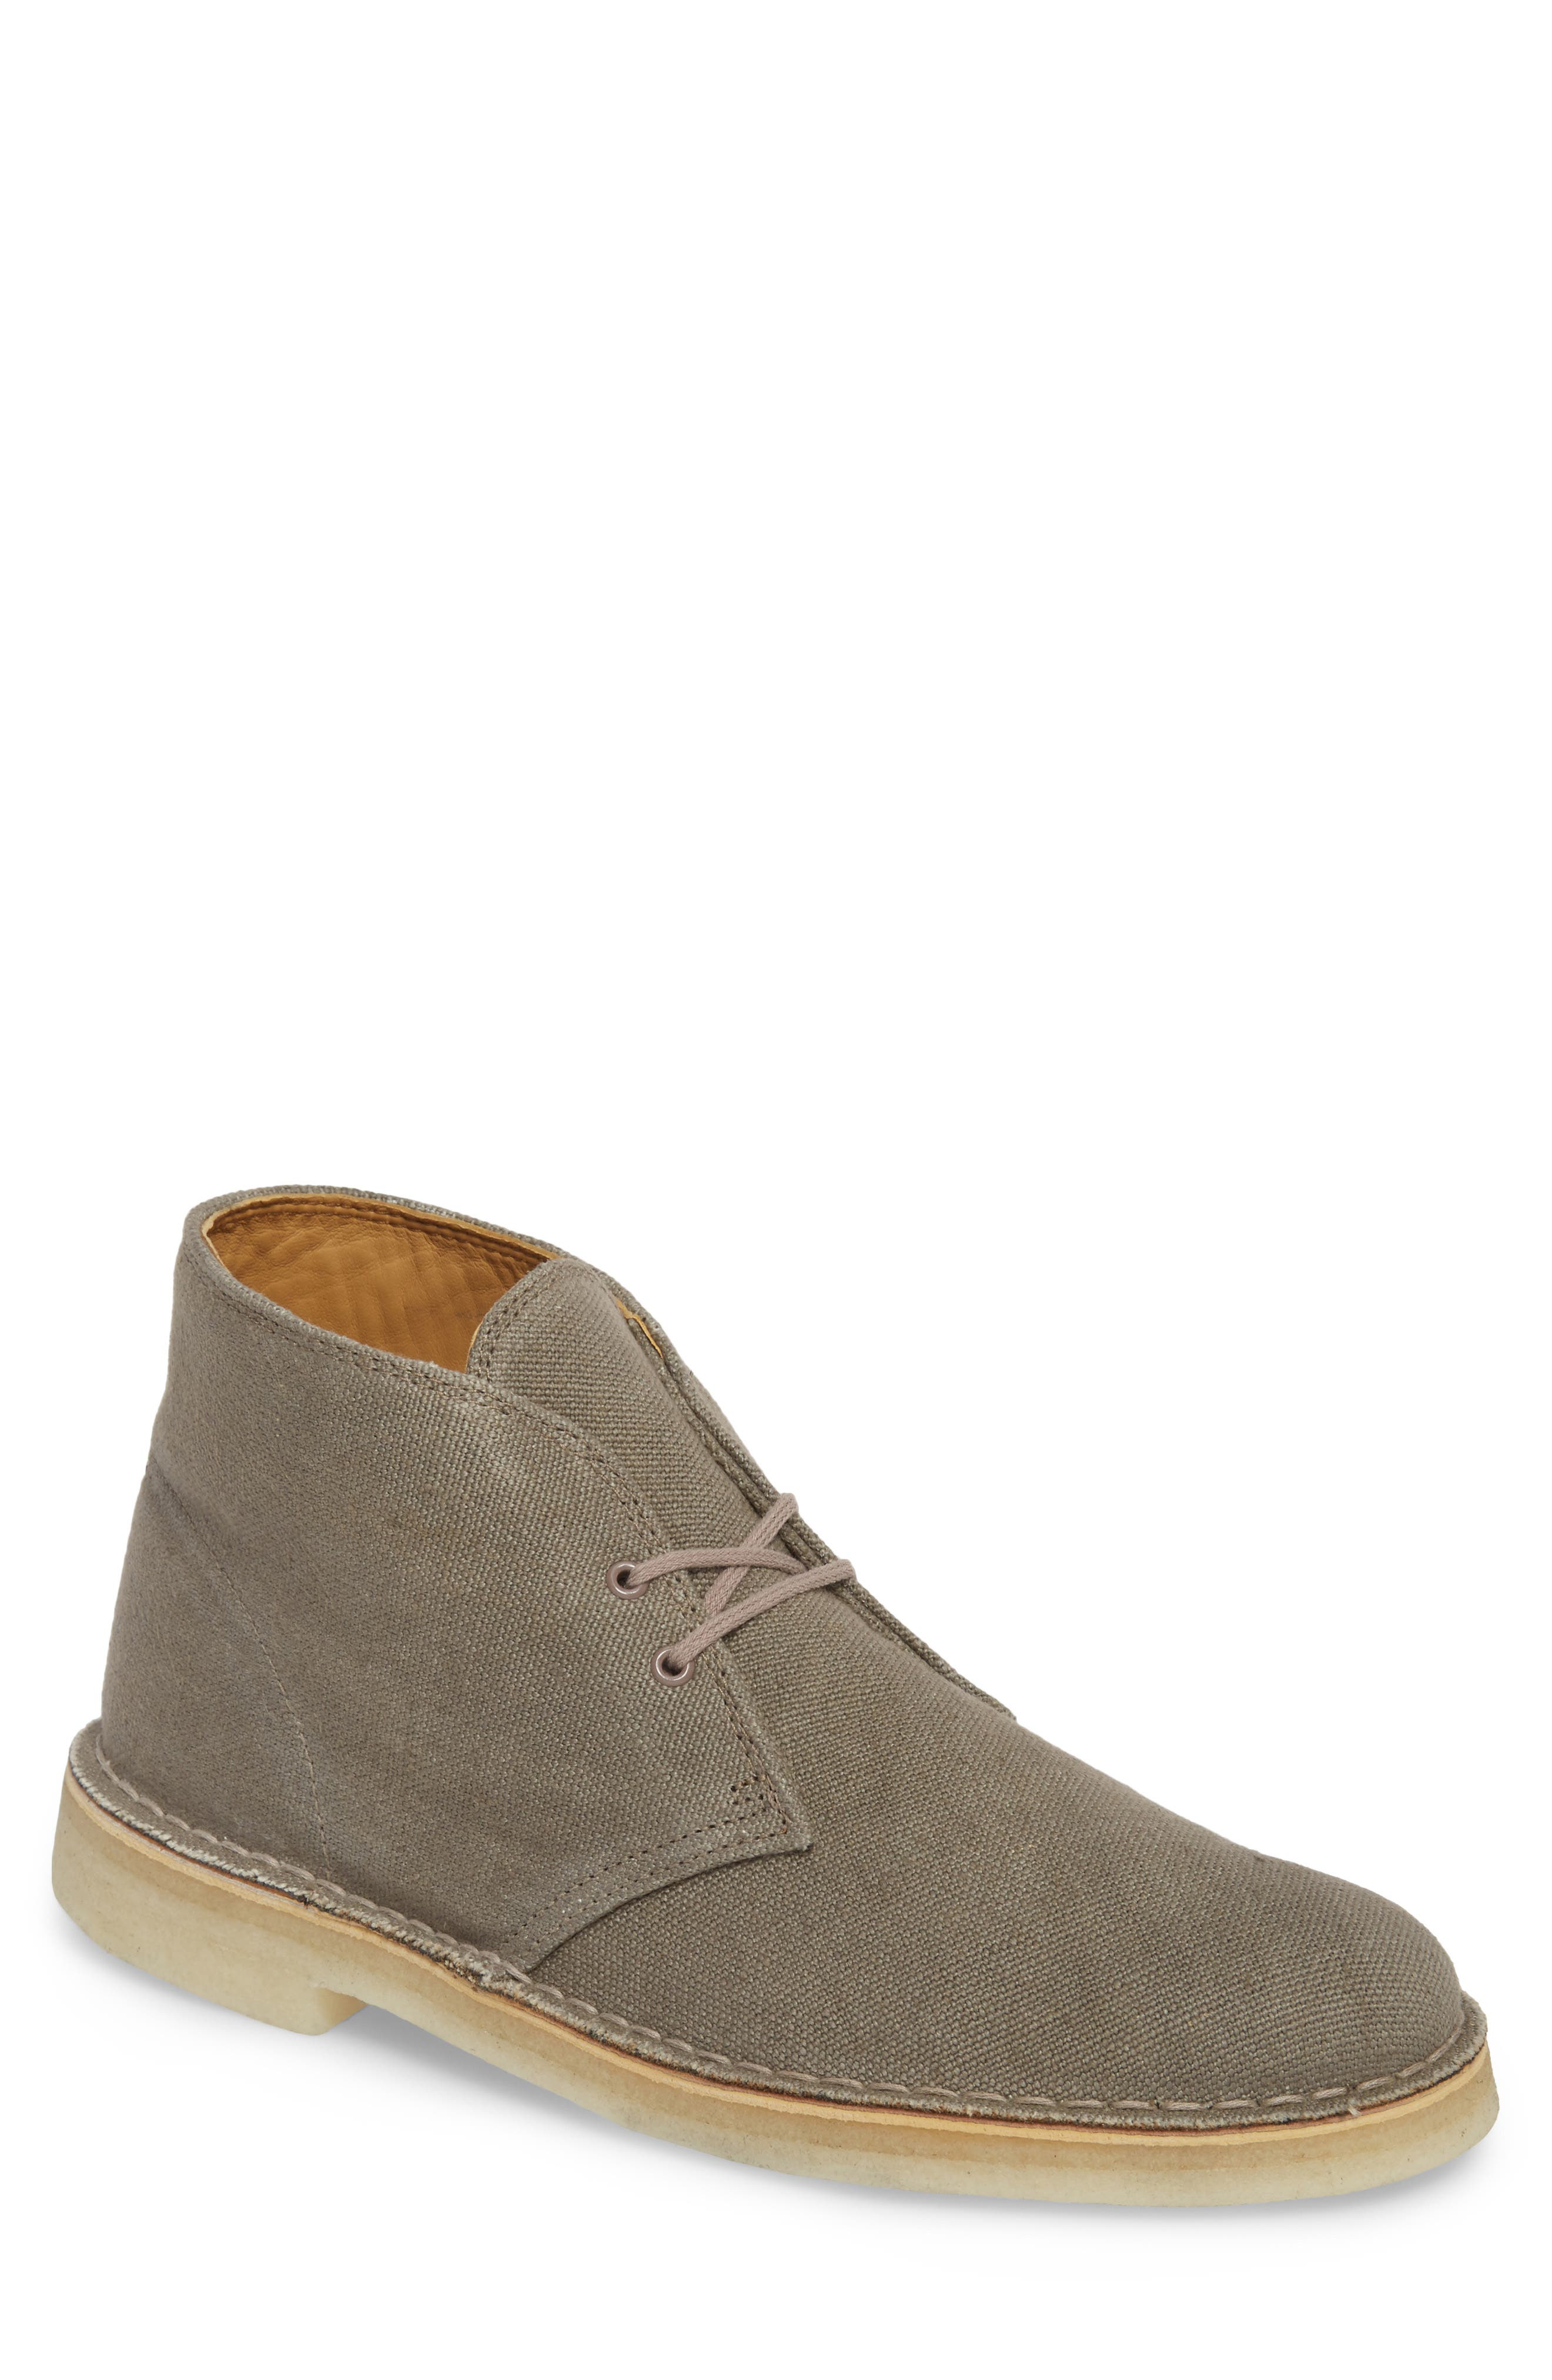 Clarks<sup>®</sup> Desert Chukka Boot,                         Main,                         color, Taupe Canvas